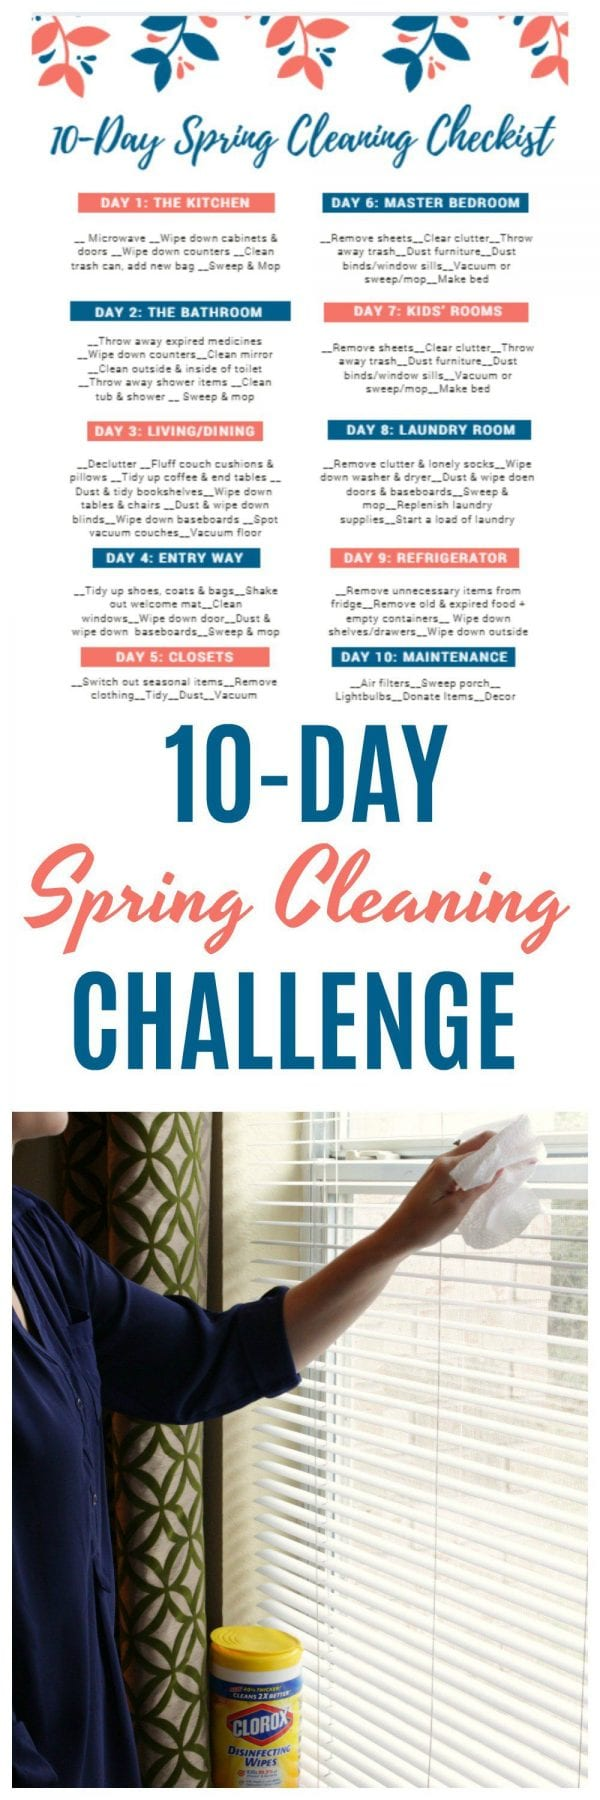 Your 10-Day Spring Cleaning Challenge & Checklist | Mom Fabulous